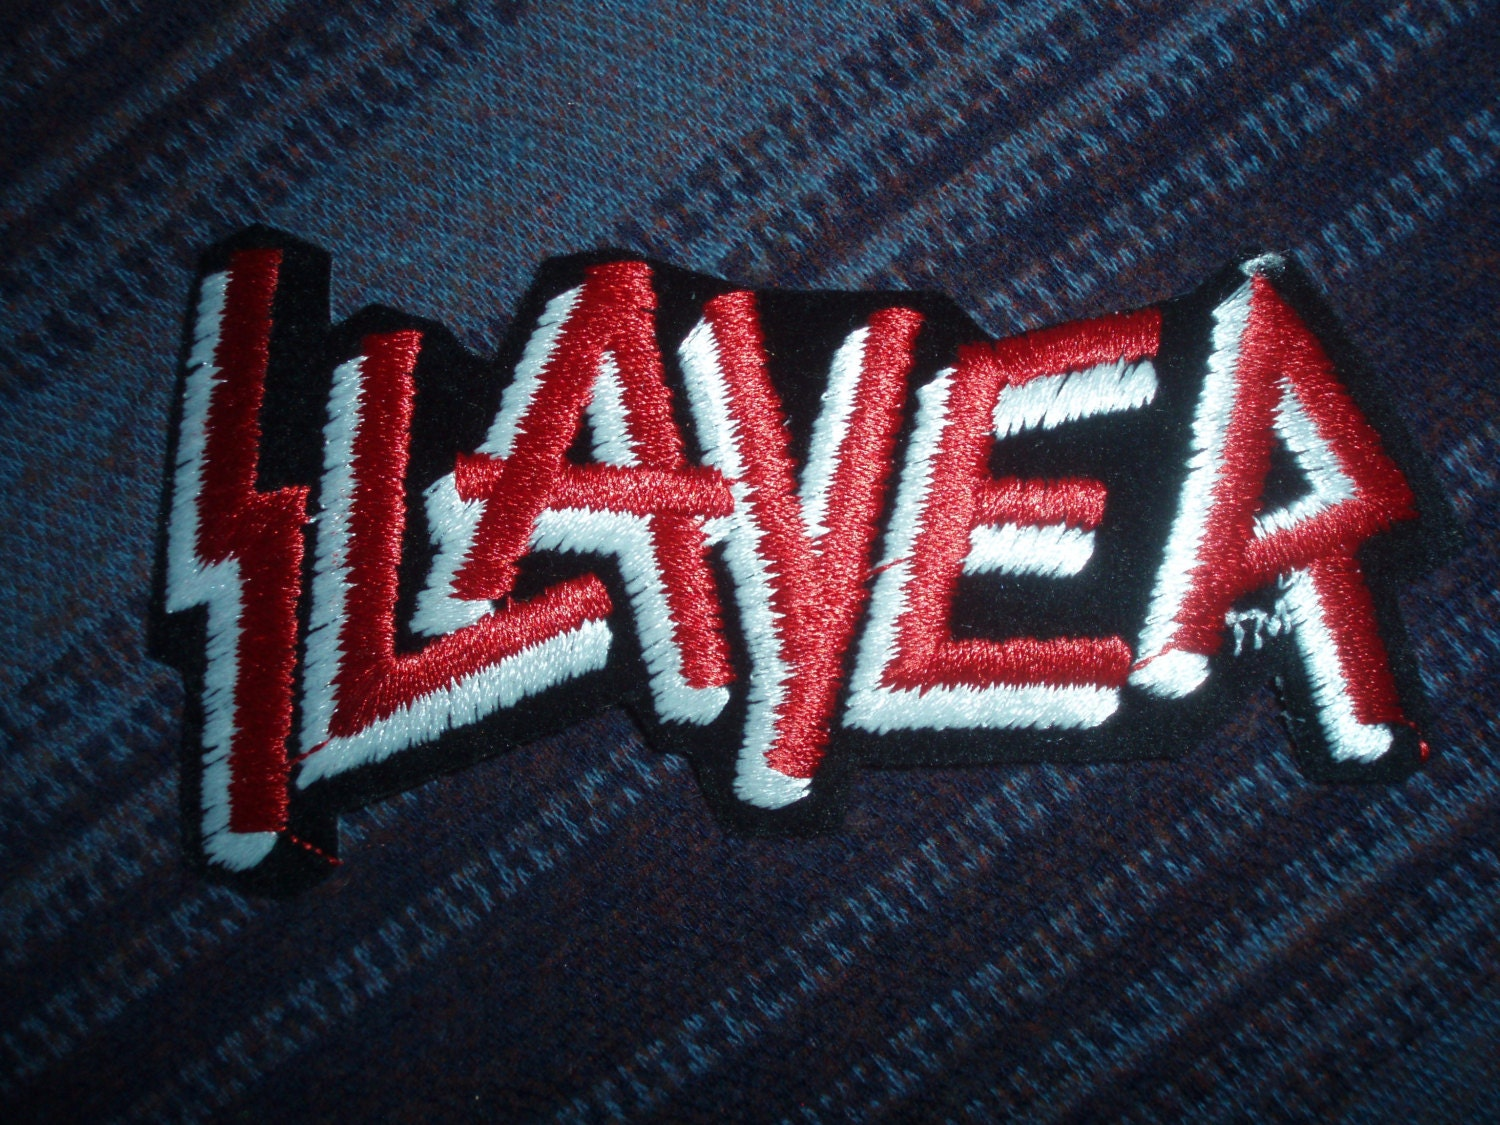 Astaroth Metal Shop - Embroidered Patch for sale - Rock